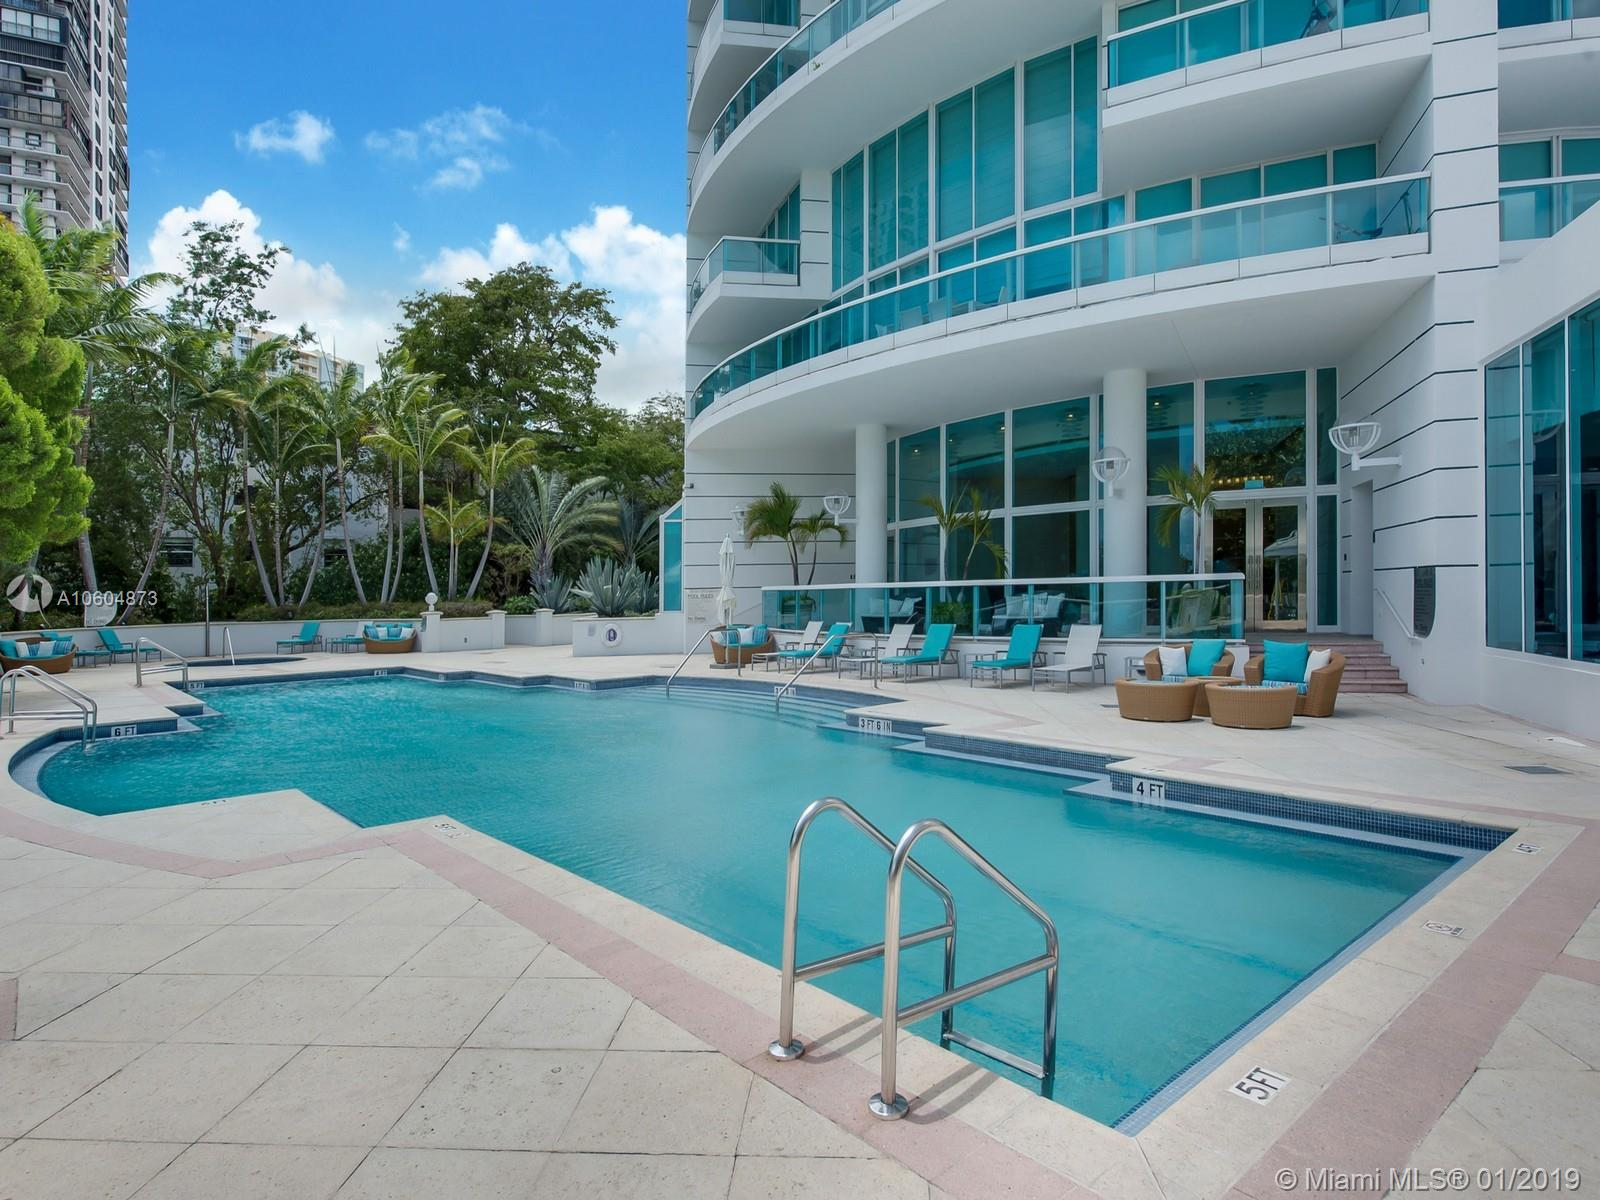 2127 Brickell Avenue, Miami, FL 33129, Bristol Tower Condominium #3102, Brickell, Miami A10604873 image #19